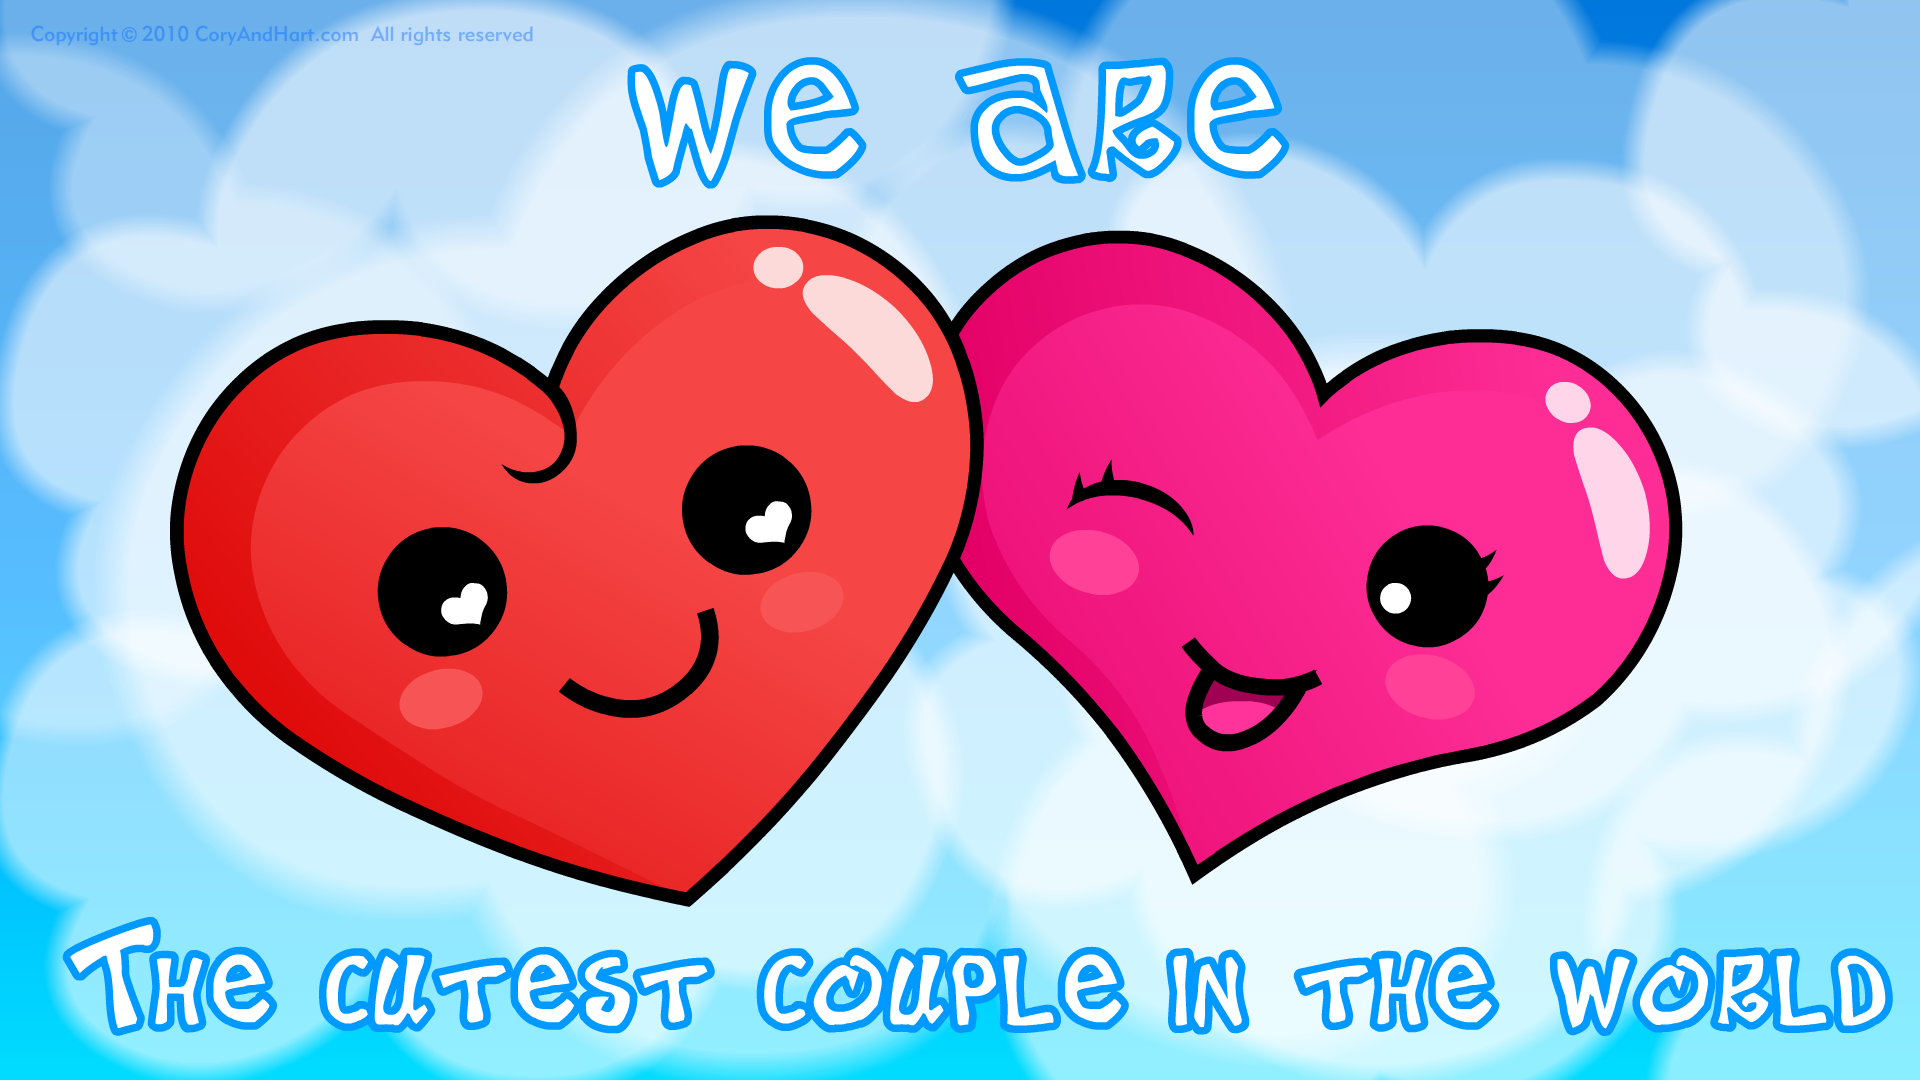 Wallpaper Love cute Photo : cute-i-love-you-wallpaper-for-mobile-9 amusings